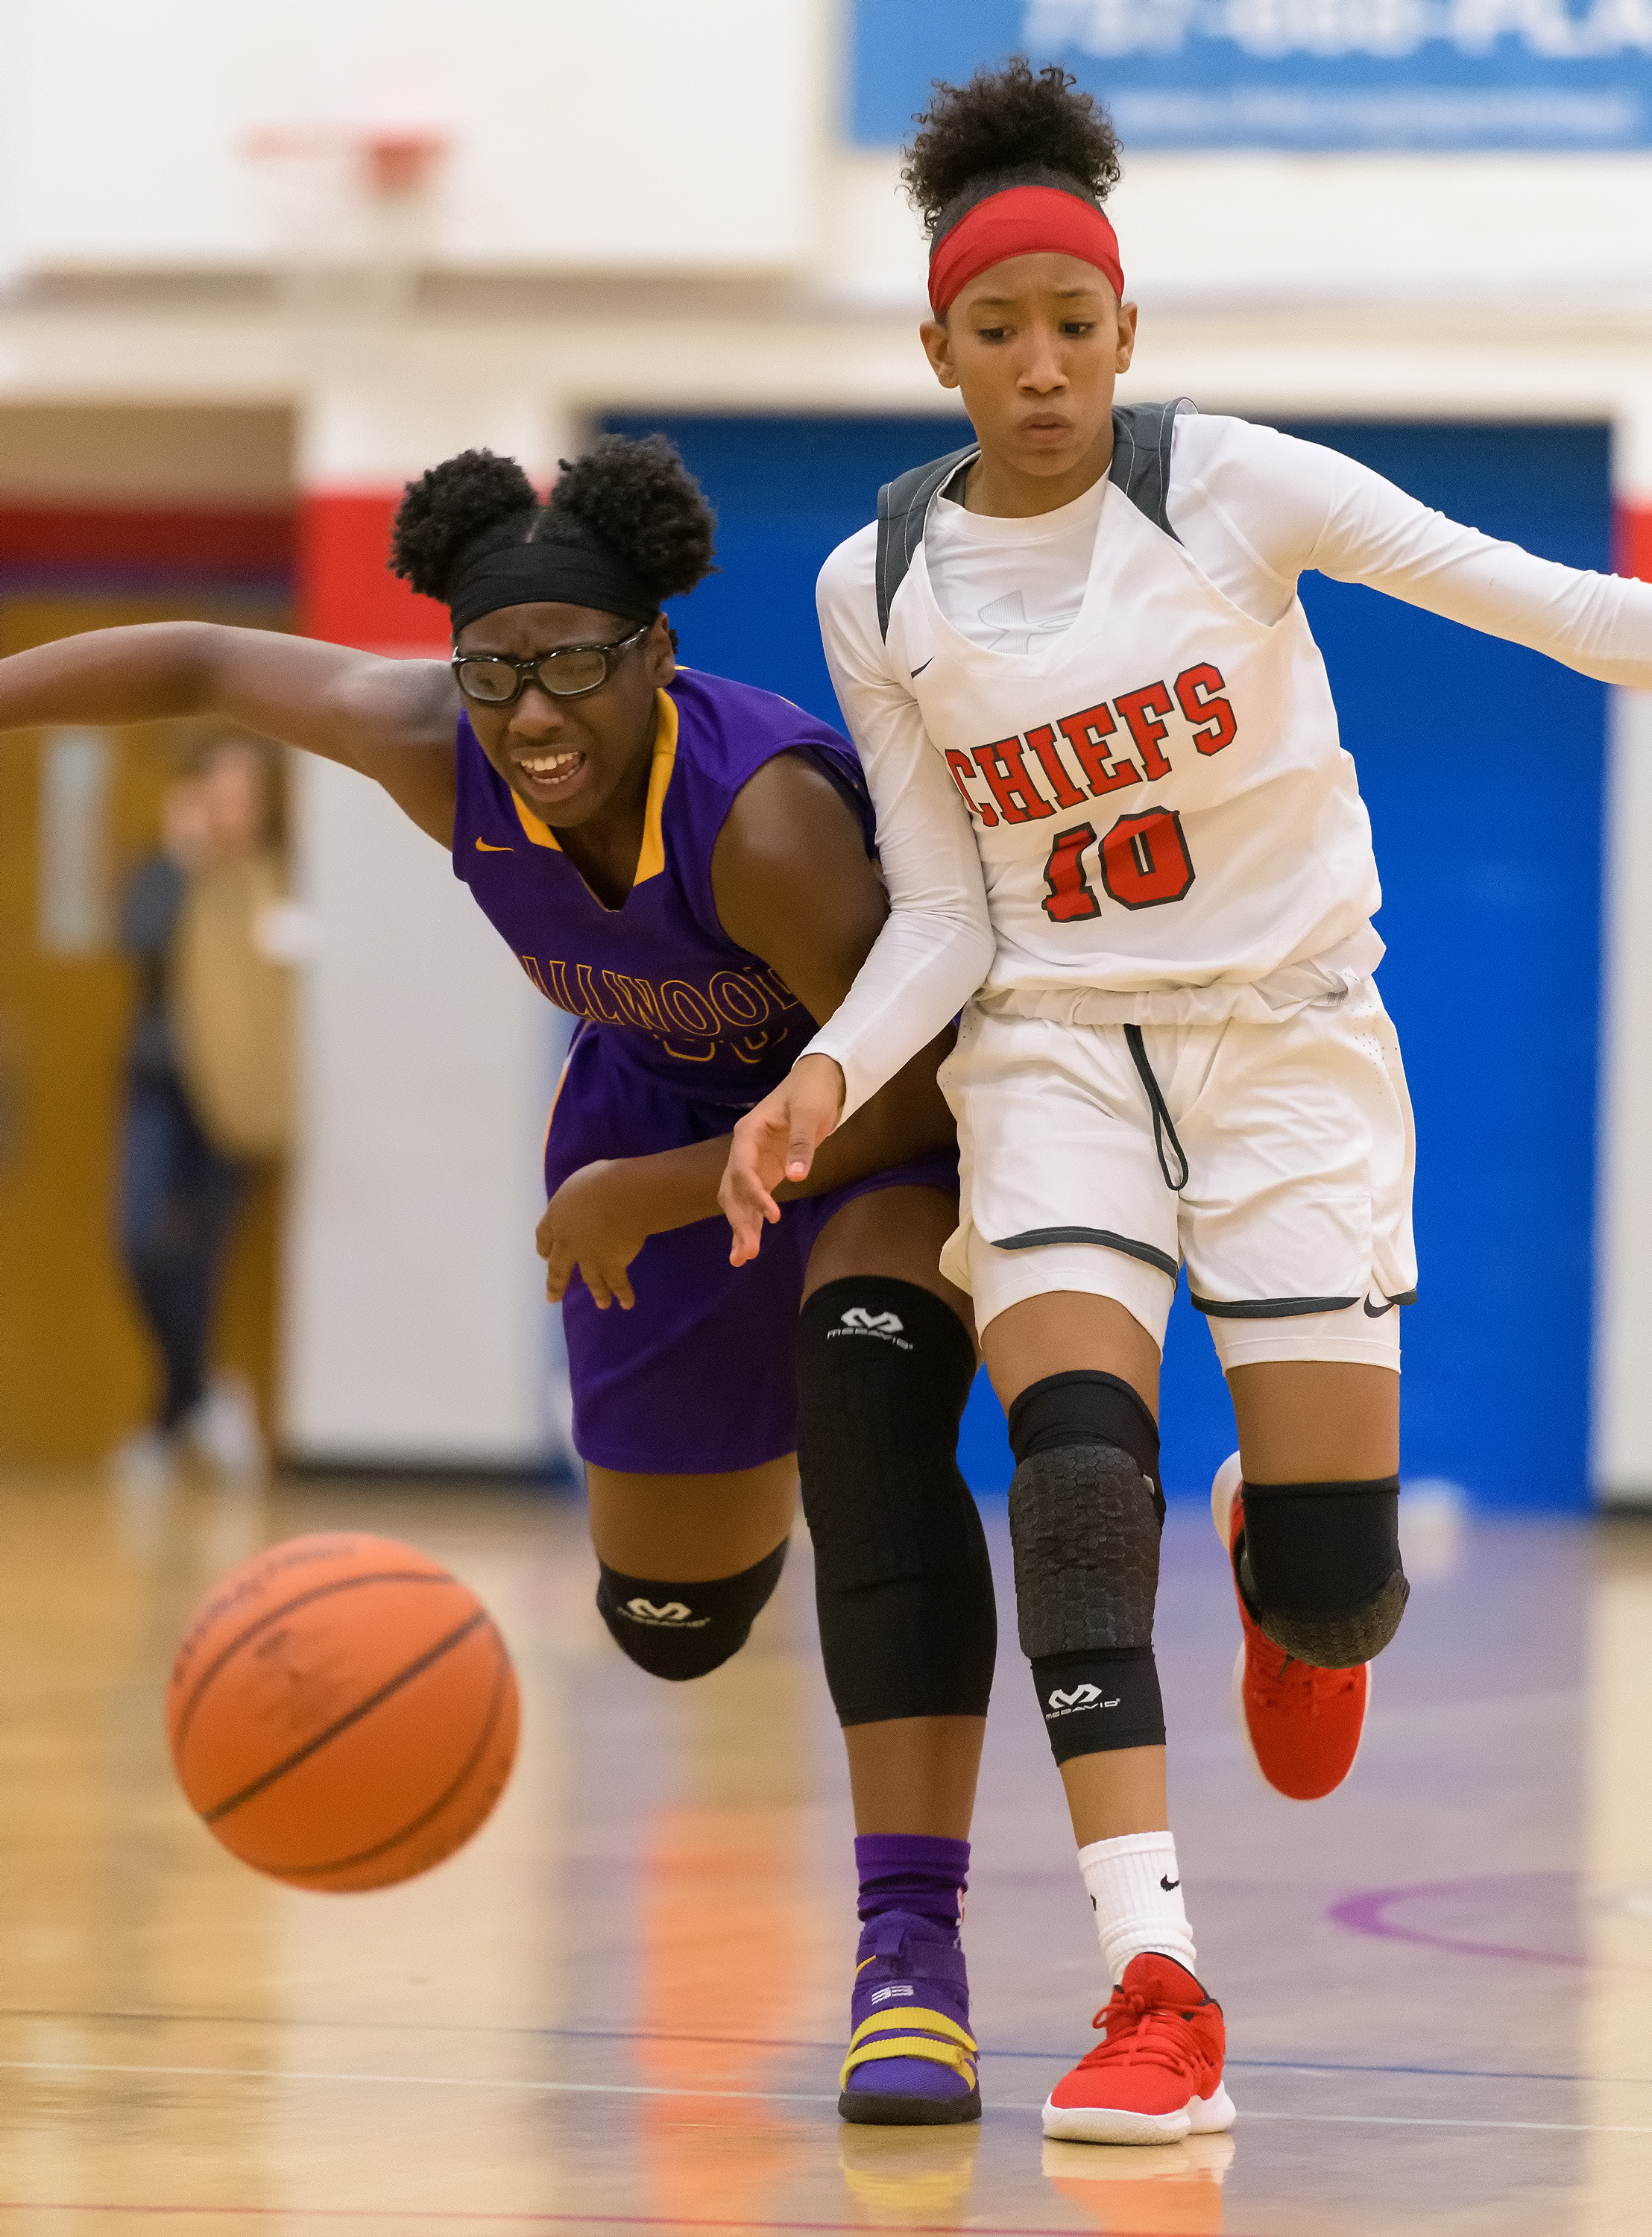 Game action from the Tallwood vs Kempsville girls basketball game held on Friday, December 07, 2018 at Kempsville High School. Kempsville defeated Tallwood 83 to 27.